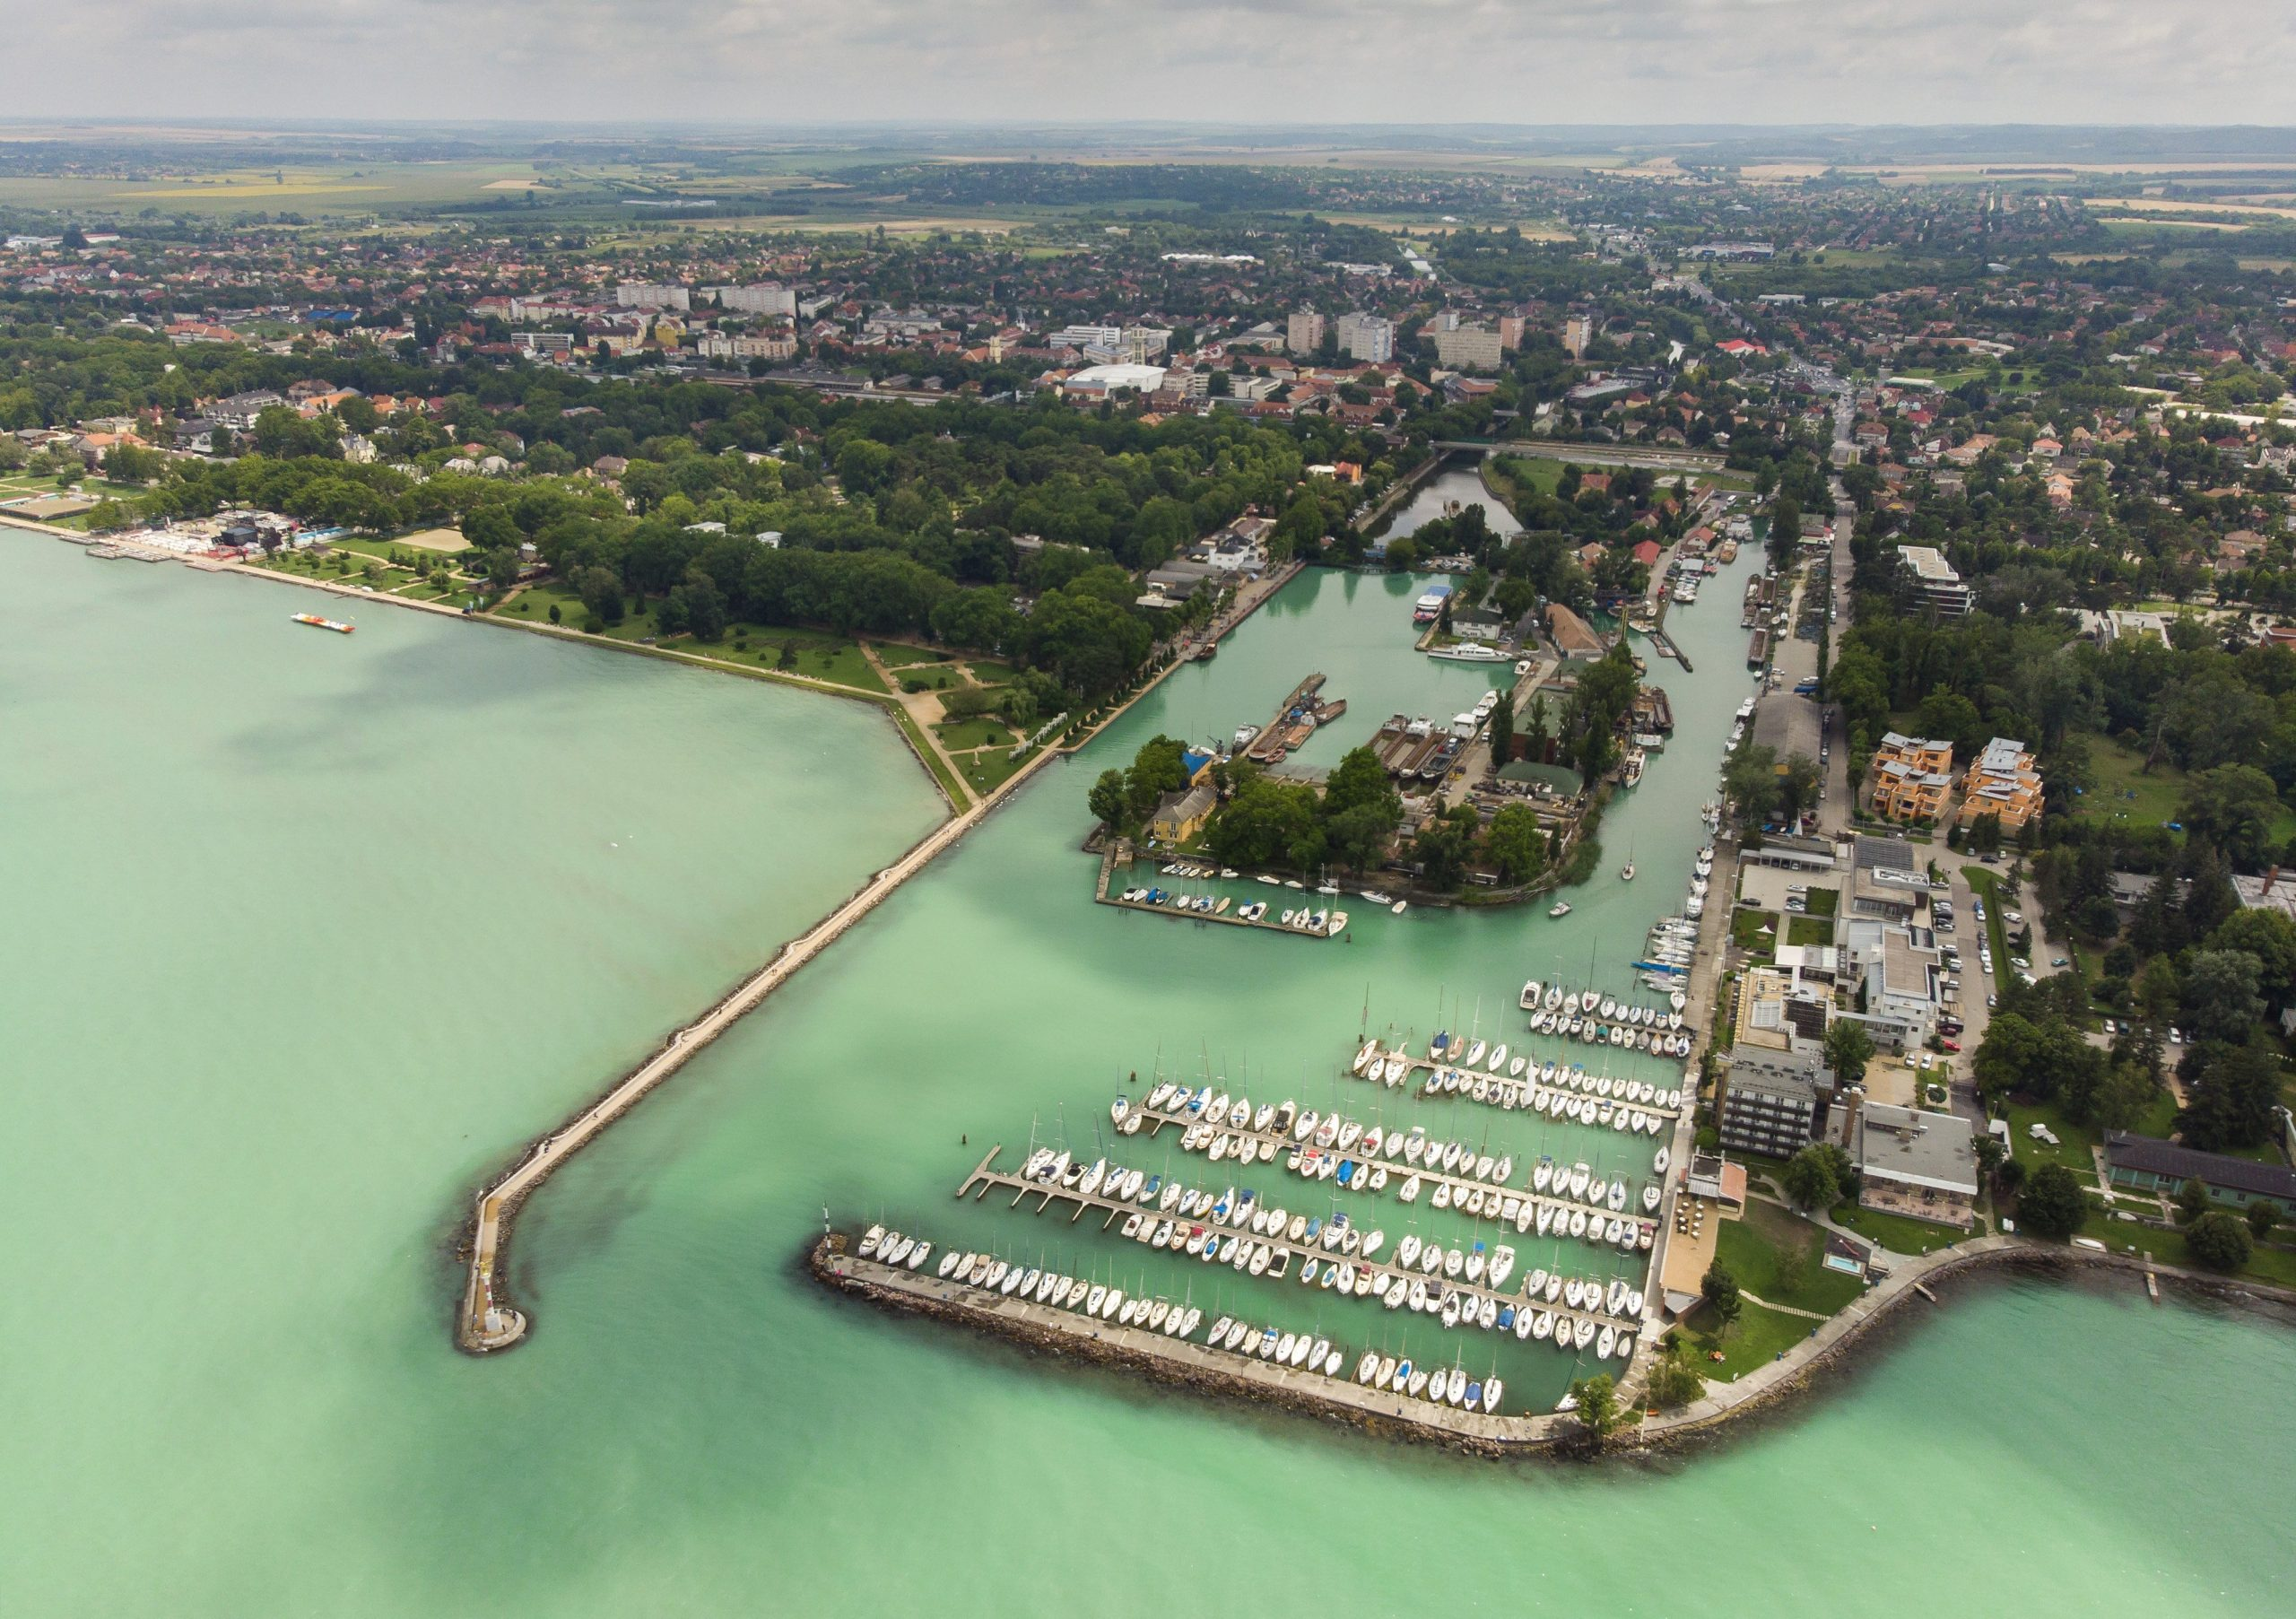 Balaton Accommodations Rise to Foreign Luxury Hotel Prices